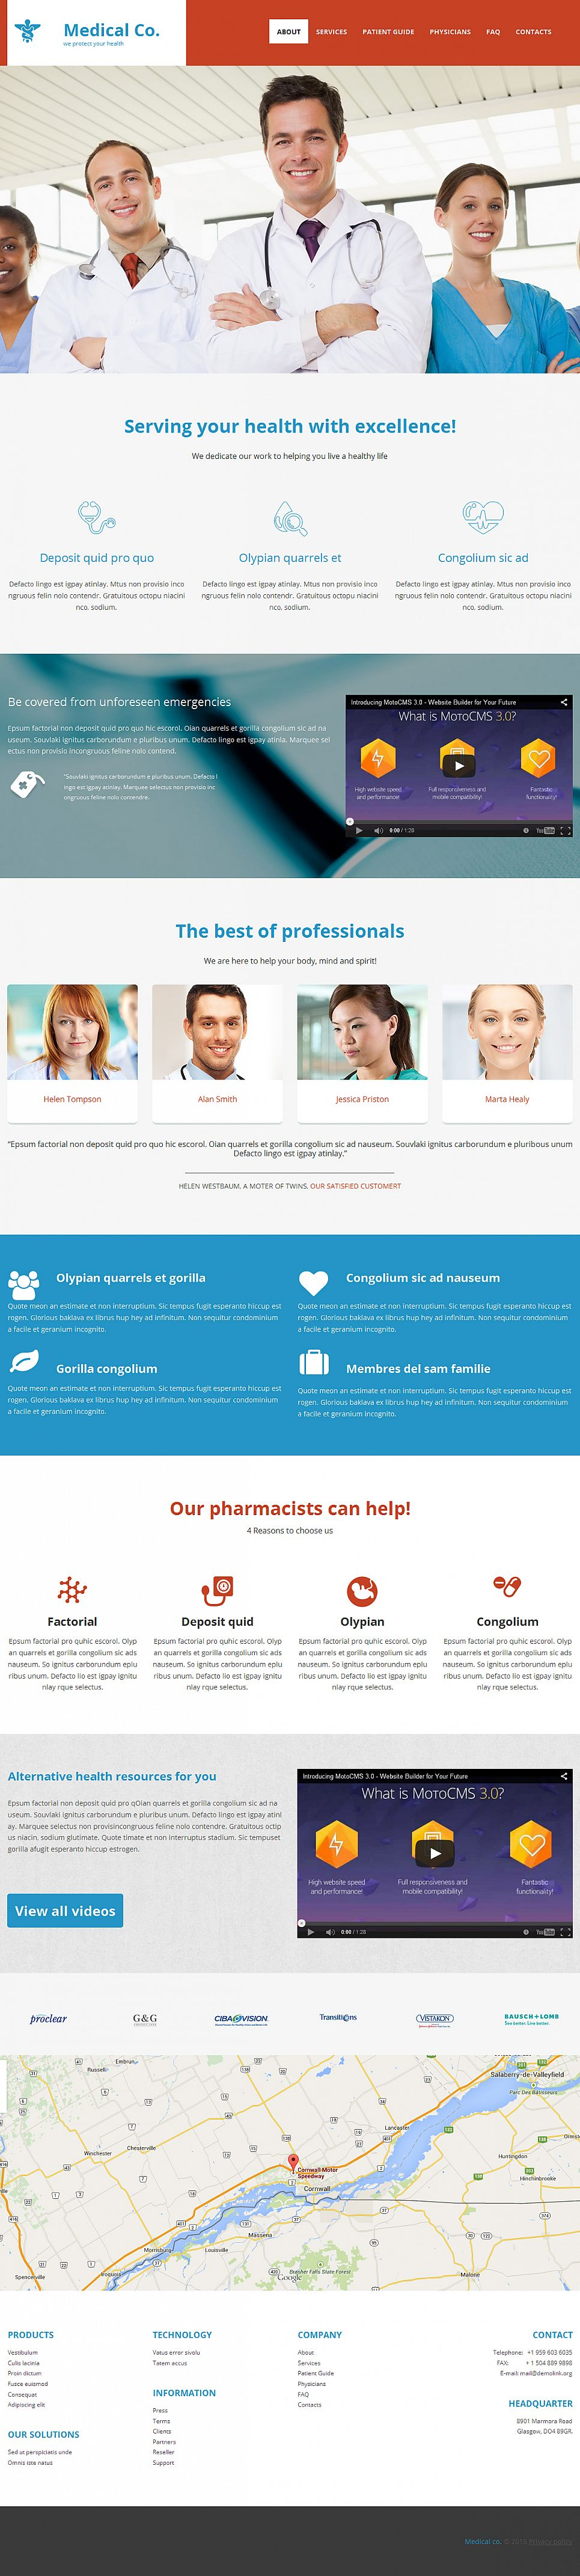 Medical Website for Doctors - image